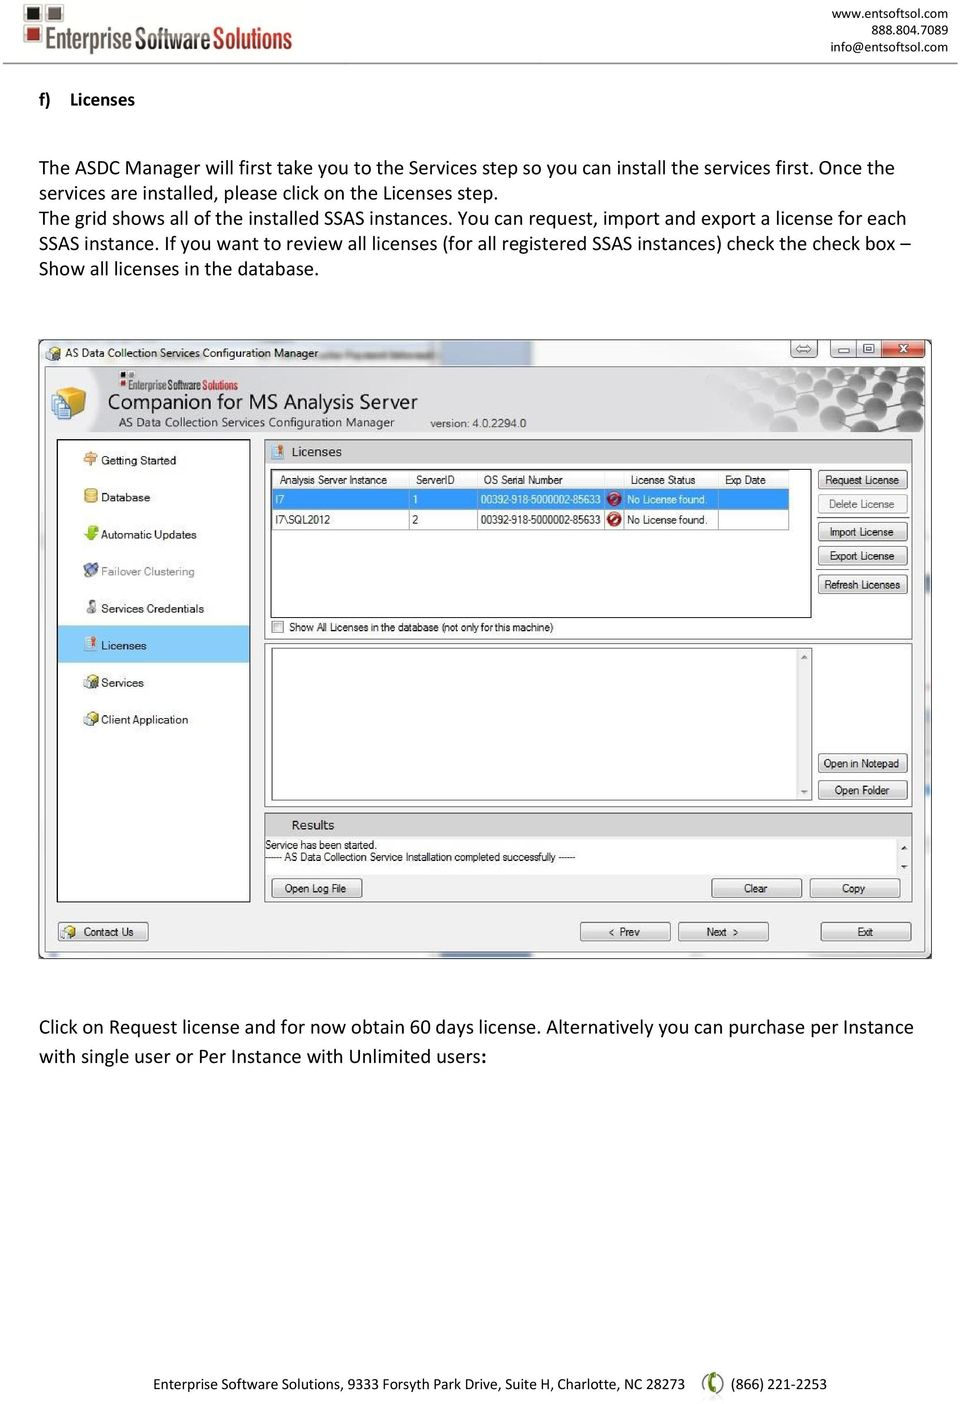 You can request, import and export a license for each SSAS instance.